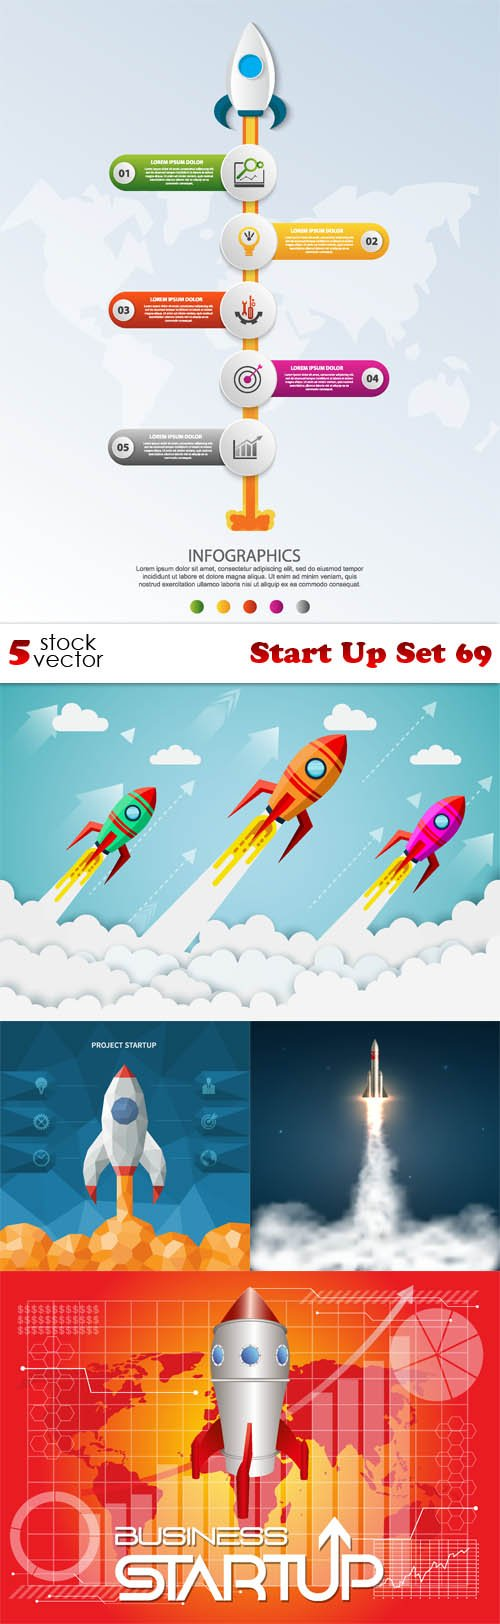 Vectors - Start Up Set 69